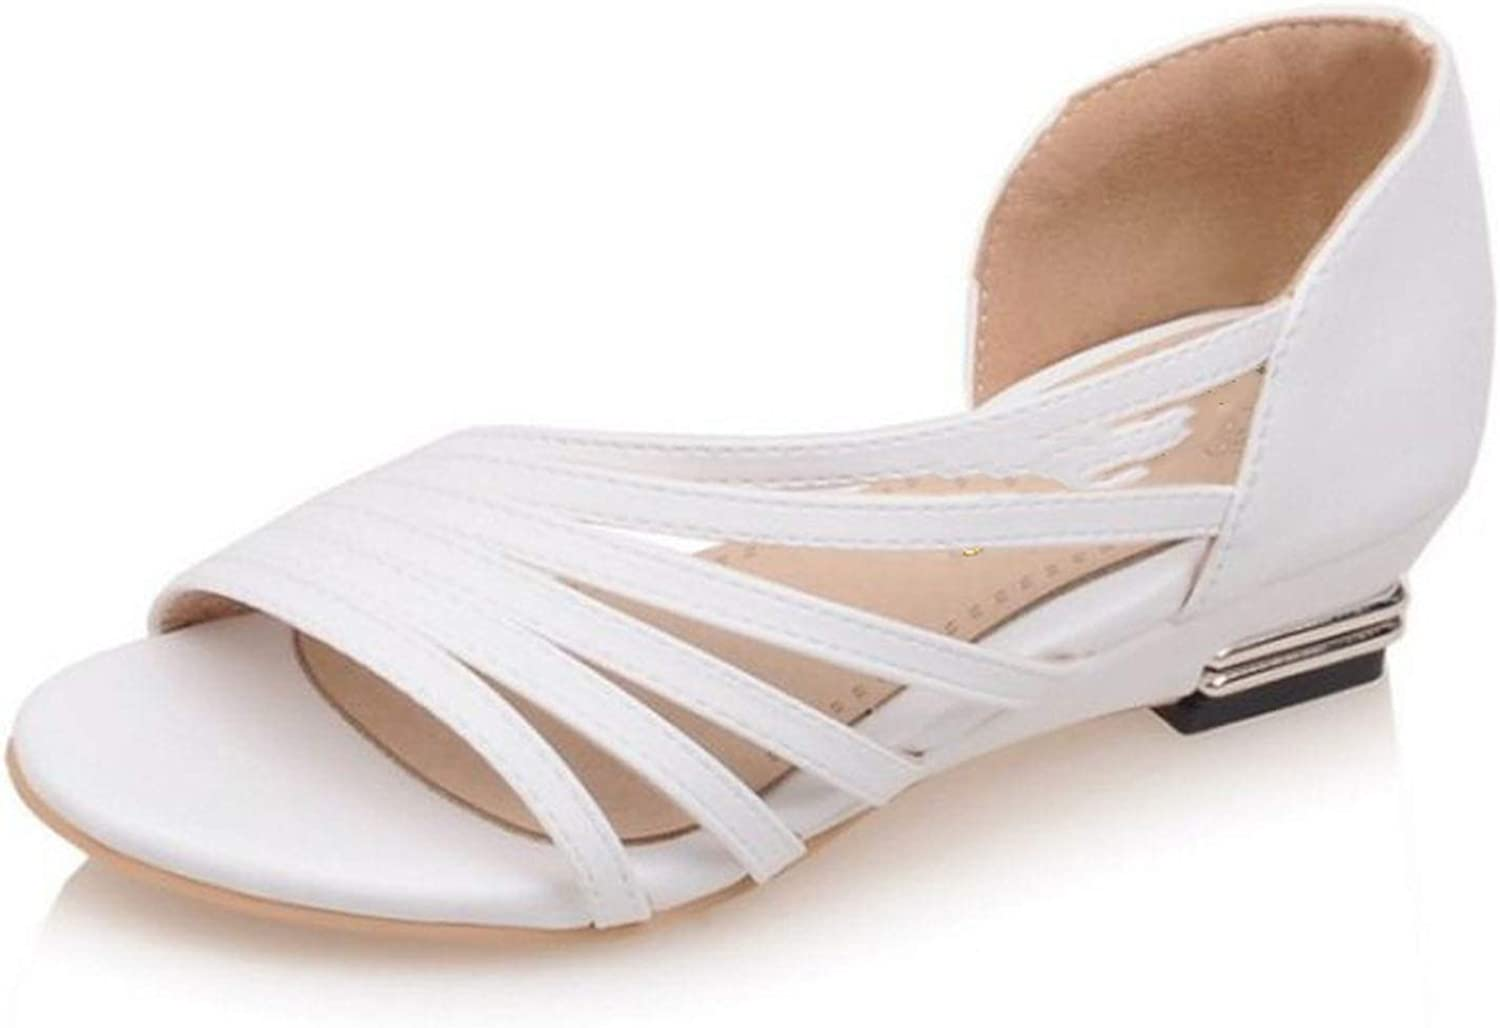 Fairly Flats Peep Toe shoes Cross Strap Solid color All Match Flat Vintage s,White,9